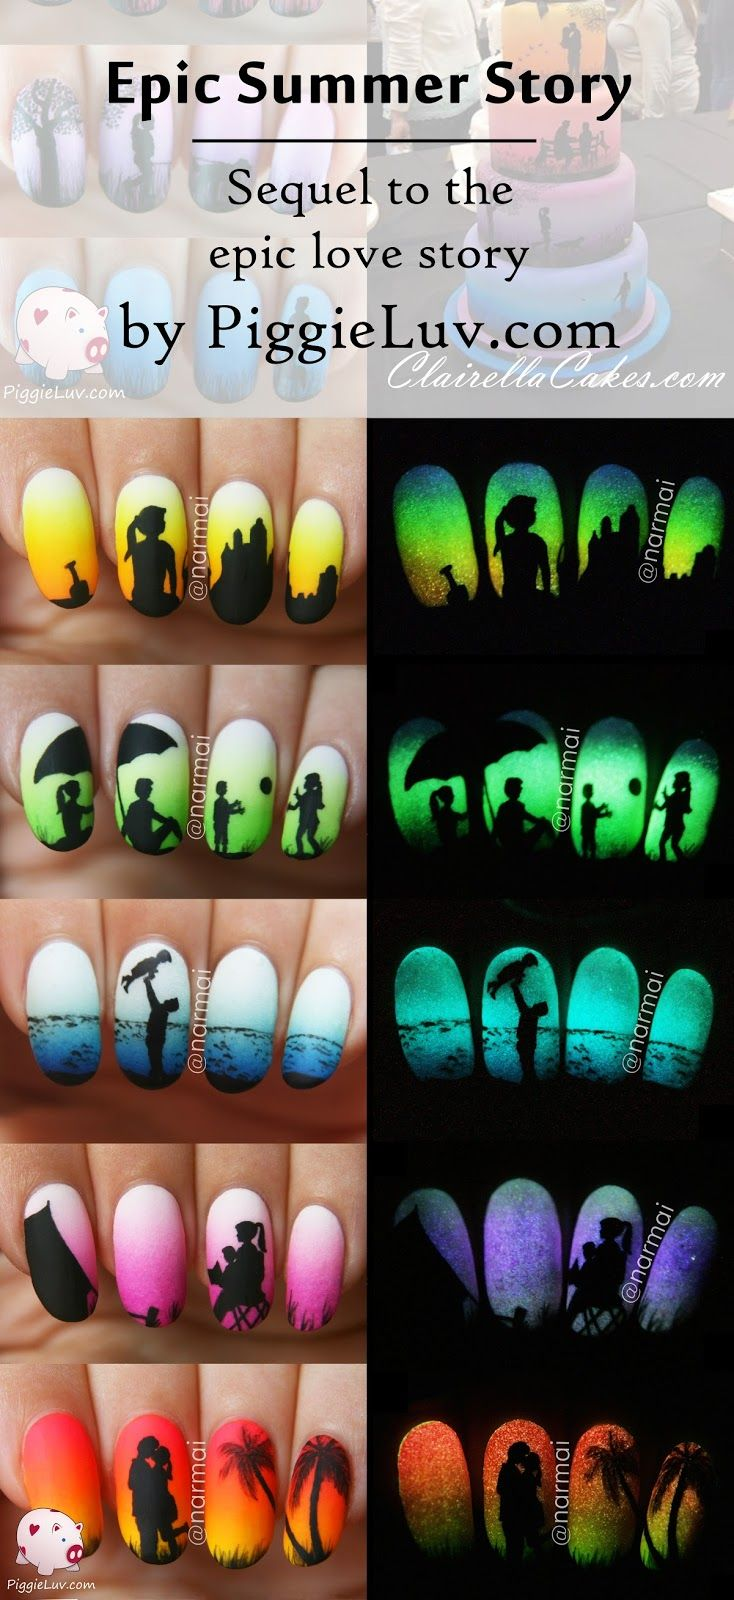 17 Best images about nightshine nails & glow in the dark ...